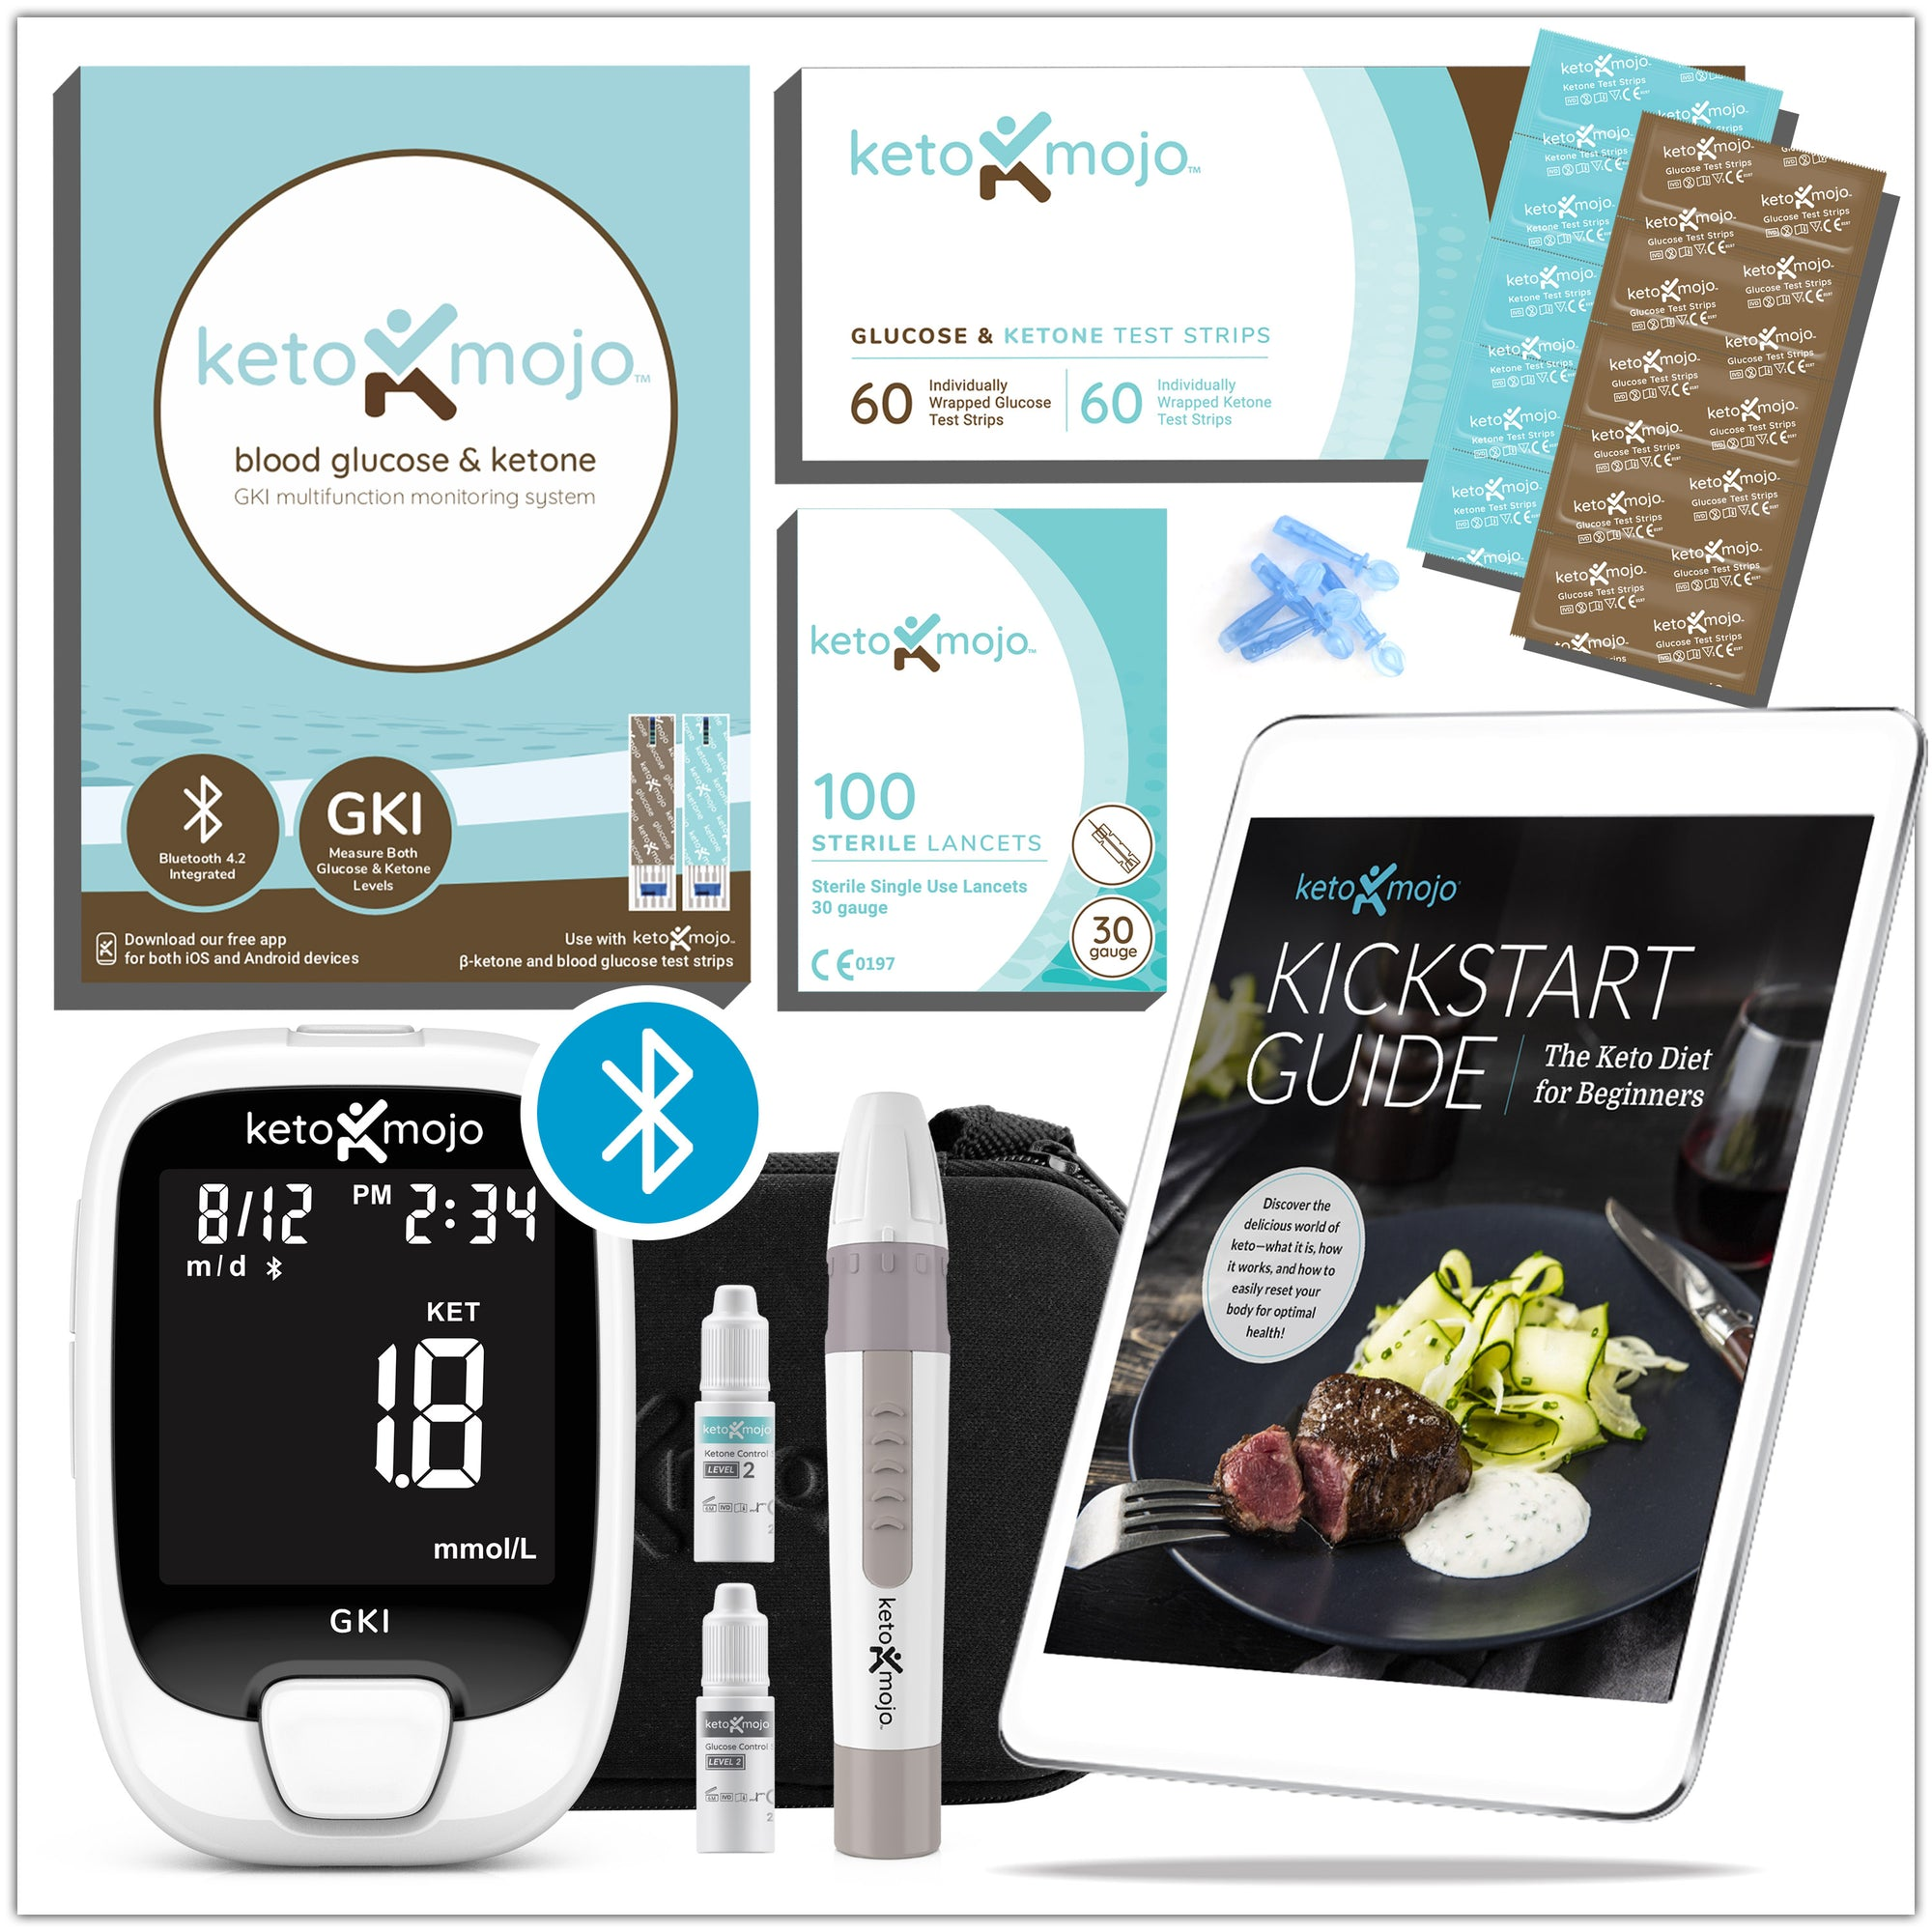 GKI-Bluetooth Blood Glucose & Ketone Meter Kit - PROMO BUNDLE (mg/dL)